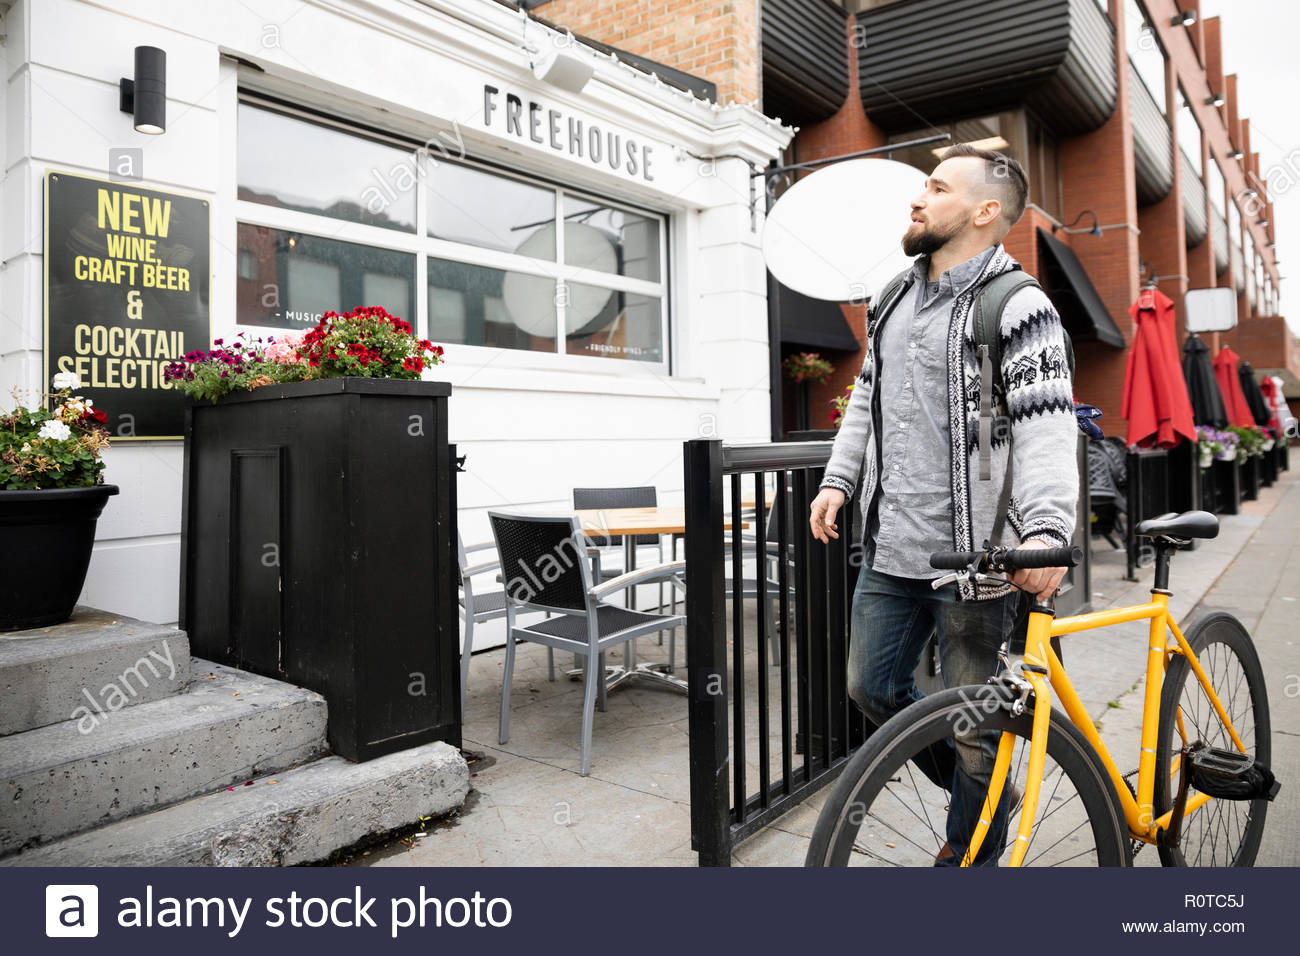 Man with bicycle outside bar - Stock Image